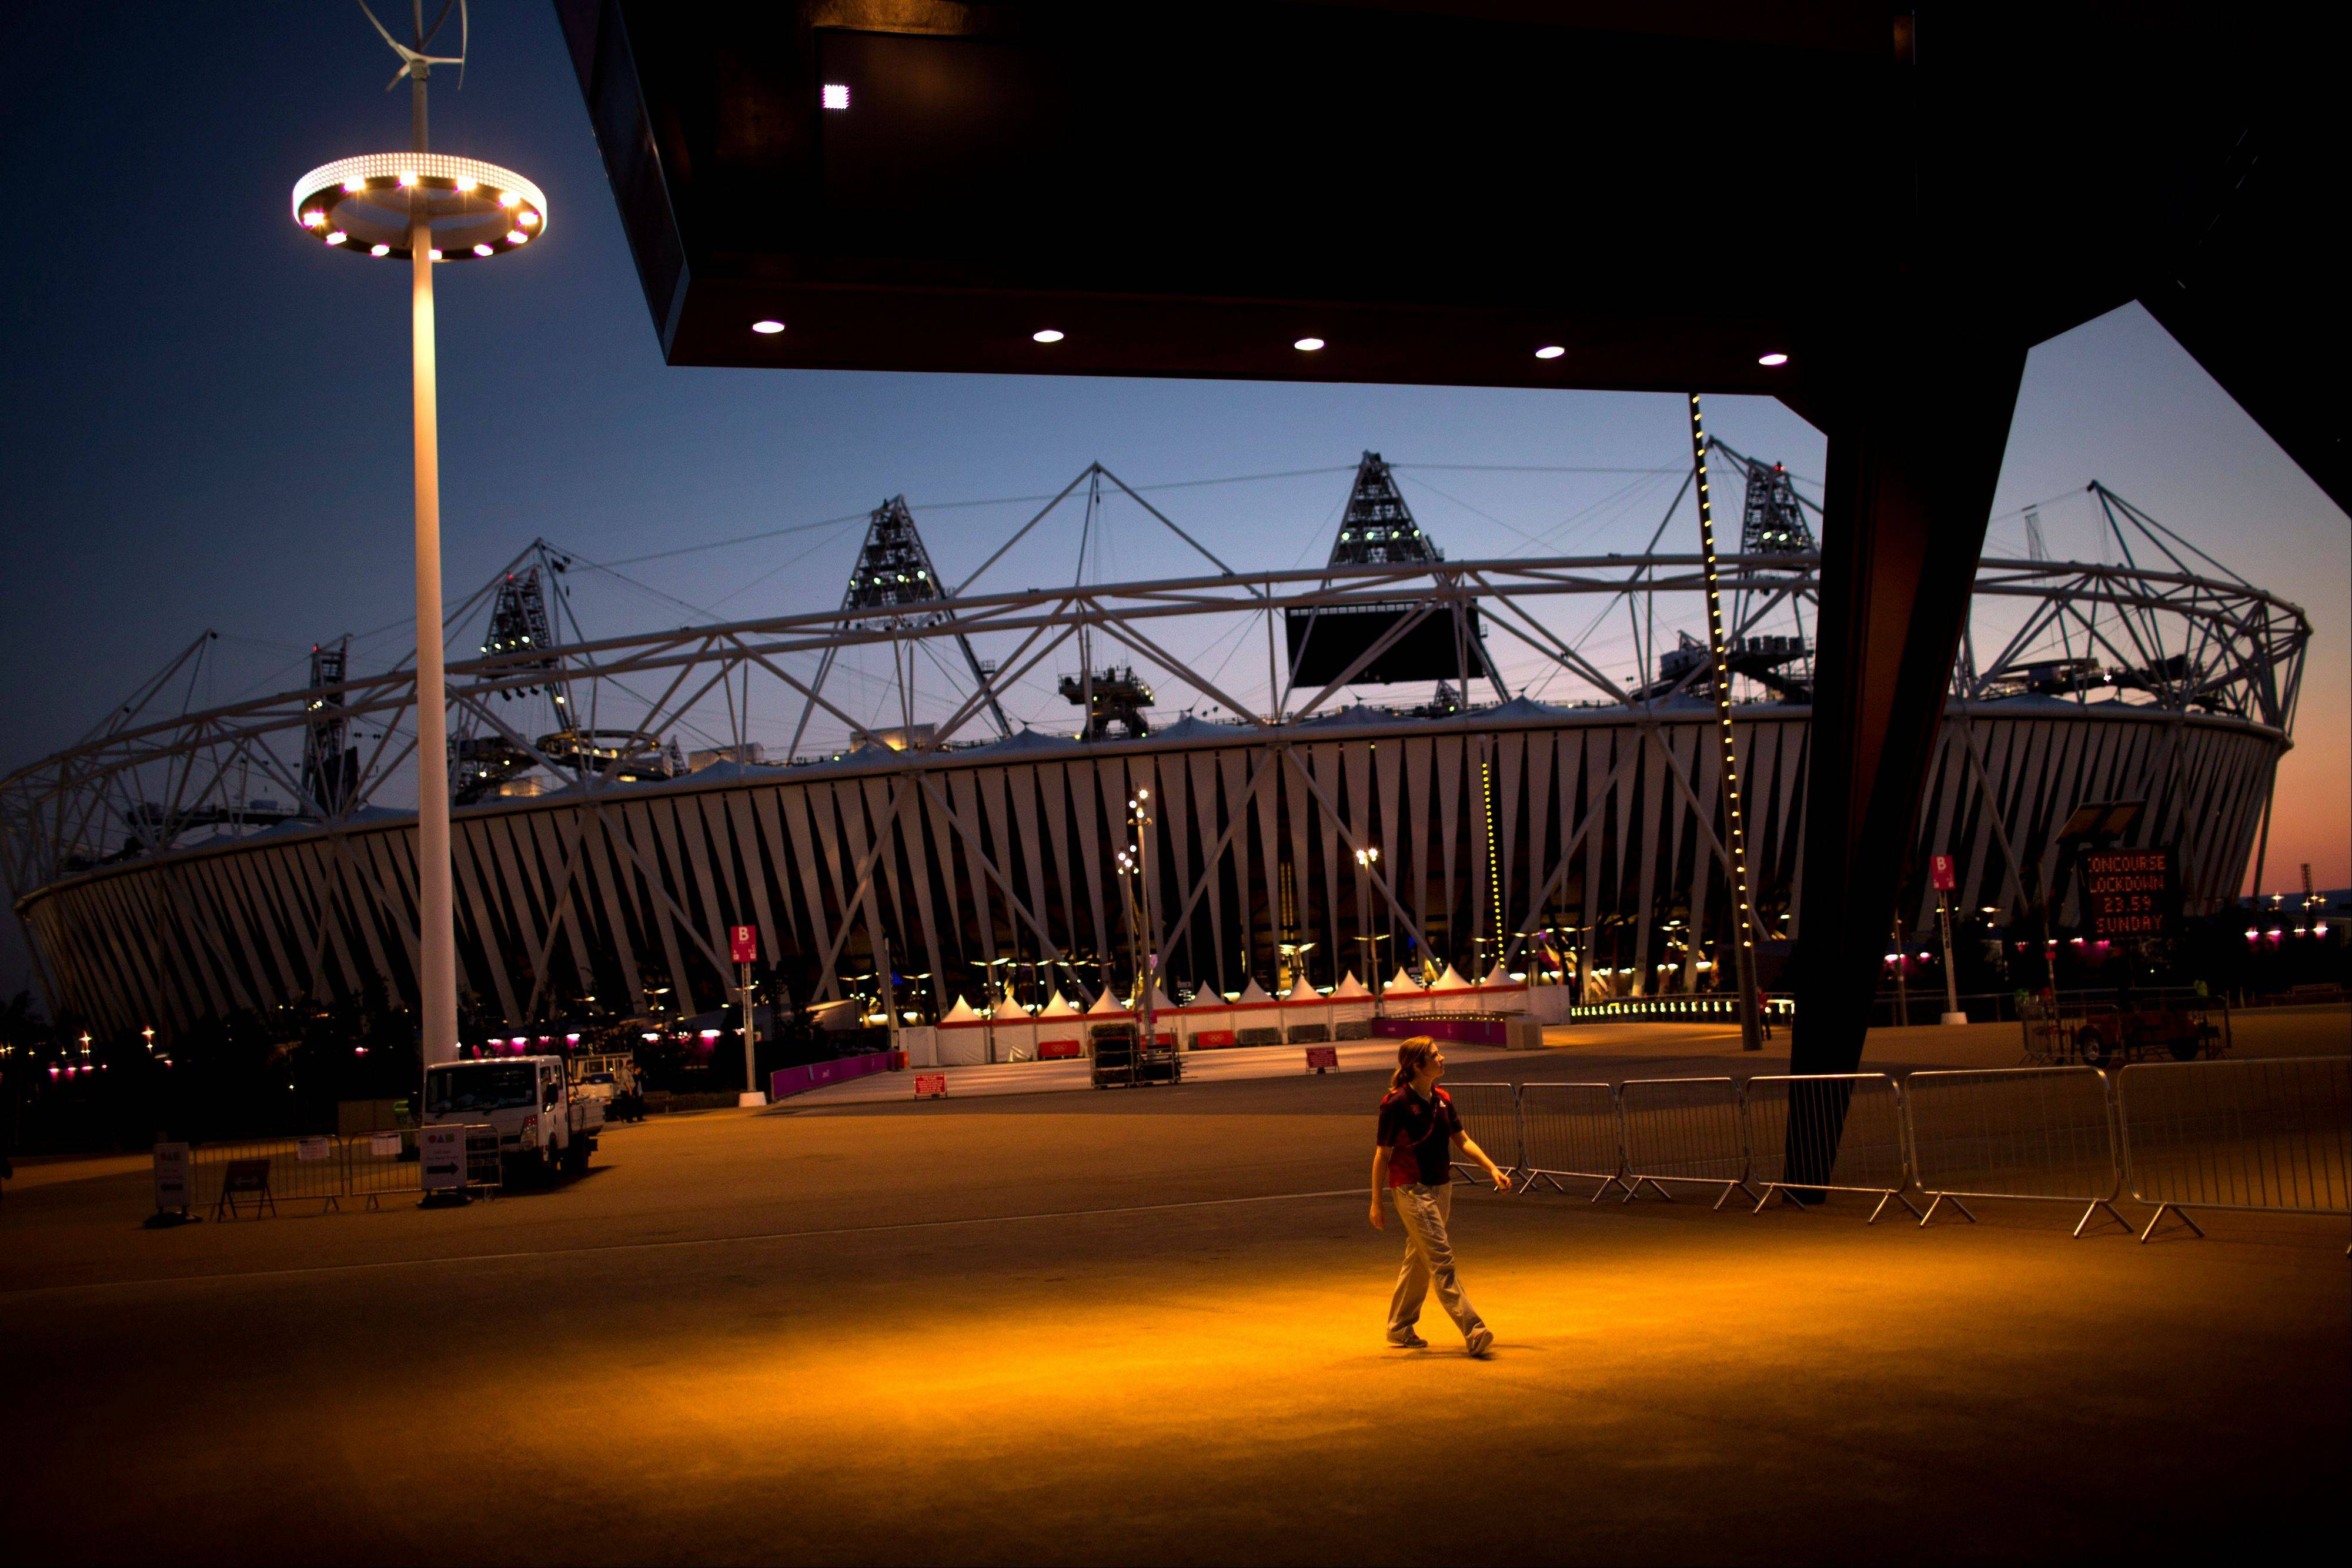 A volunteer walks past the Olympic Stadium at the 2012 Summer Olympics in London. The opening ceremonies of the Olympic Games are scheduled for Friday.